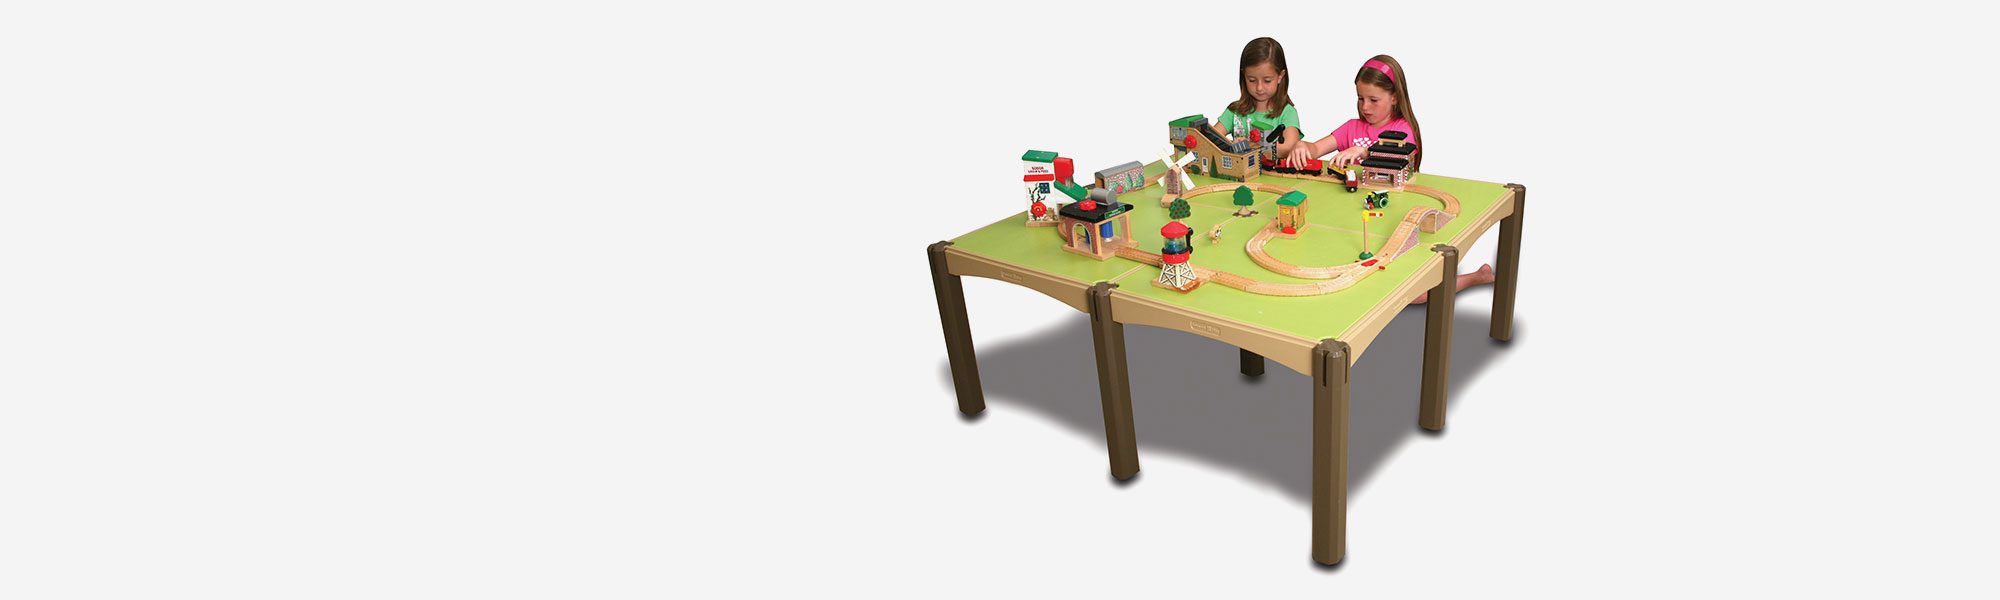 Children Using a Kids' Modular Activity Table with Train Set